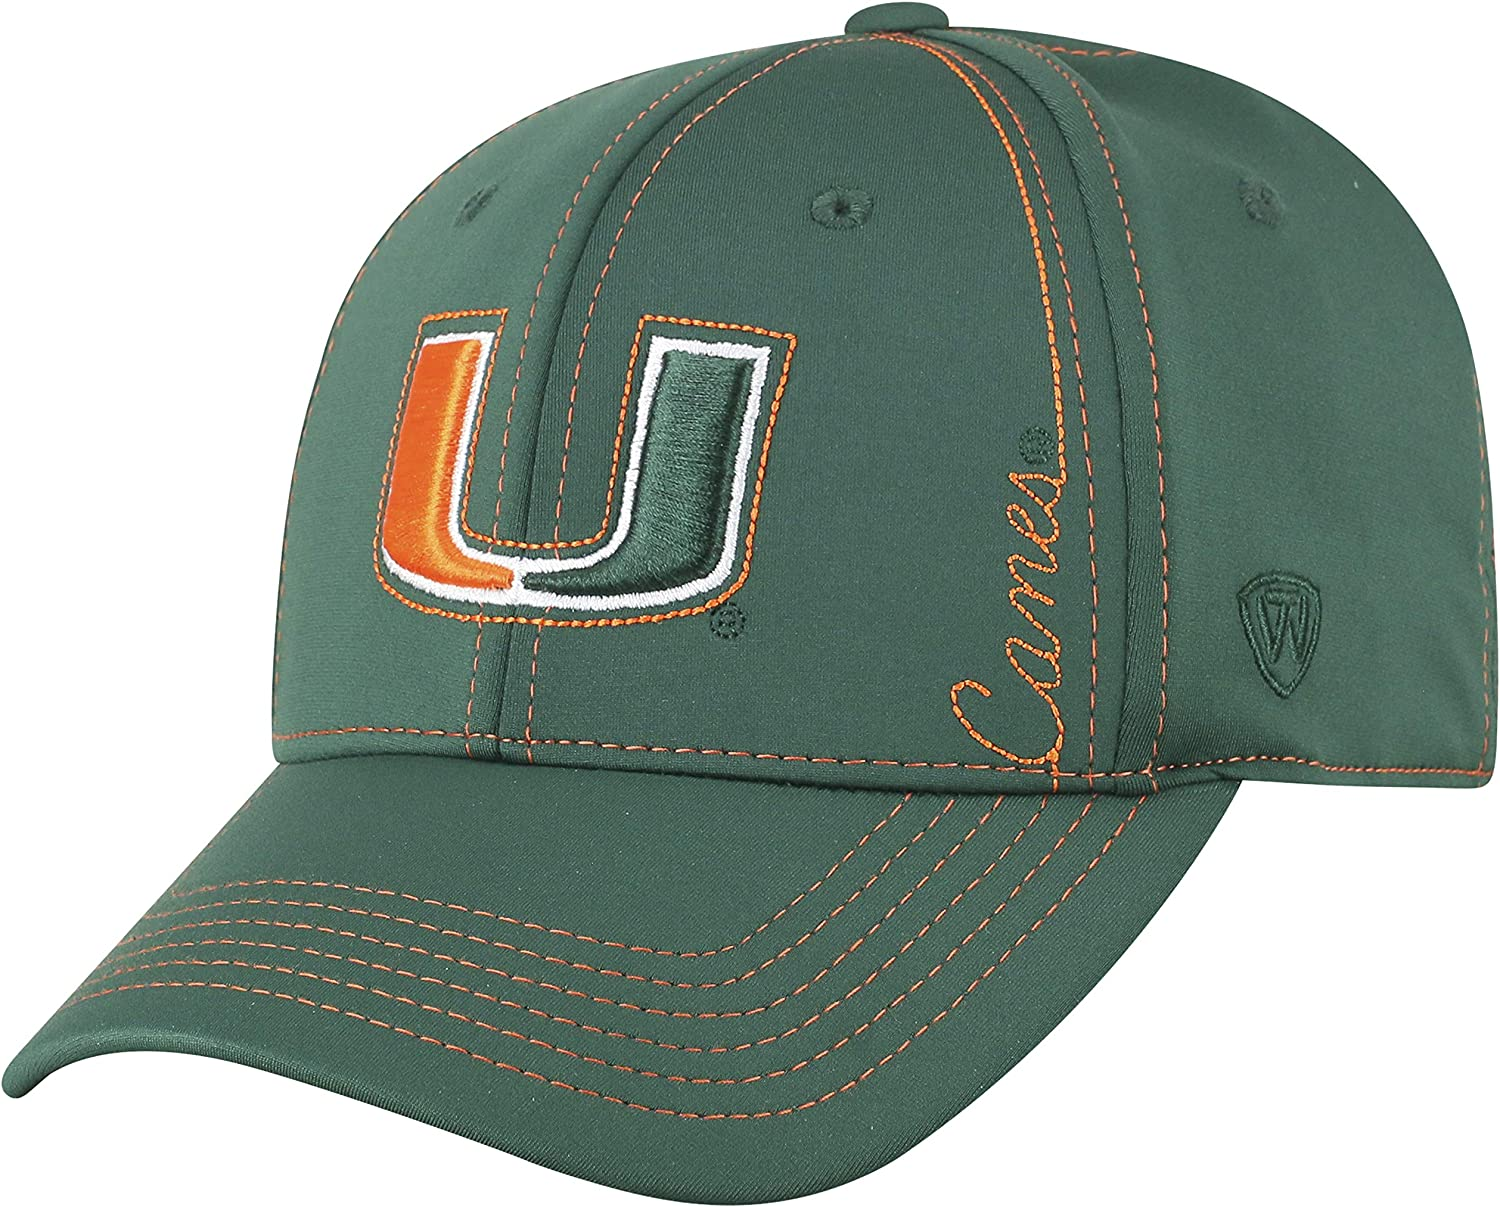 Top of the World Miami Hurricanes Official NCAA One Fit Learning Curve Hat Cap 450513